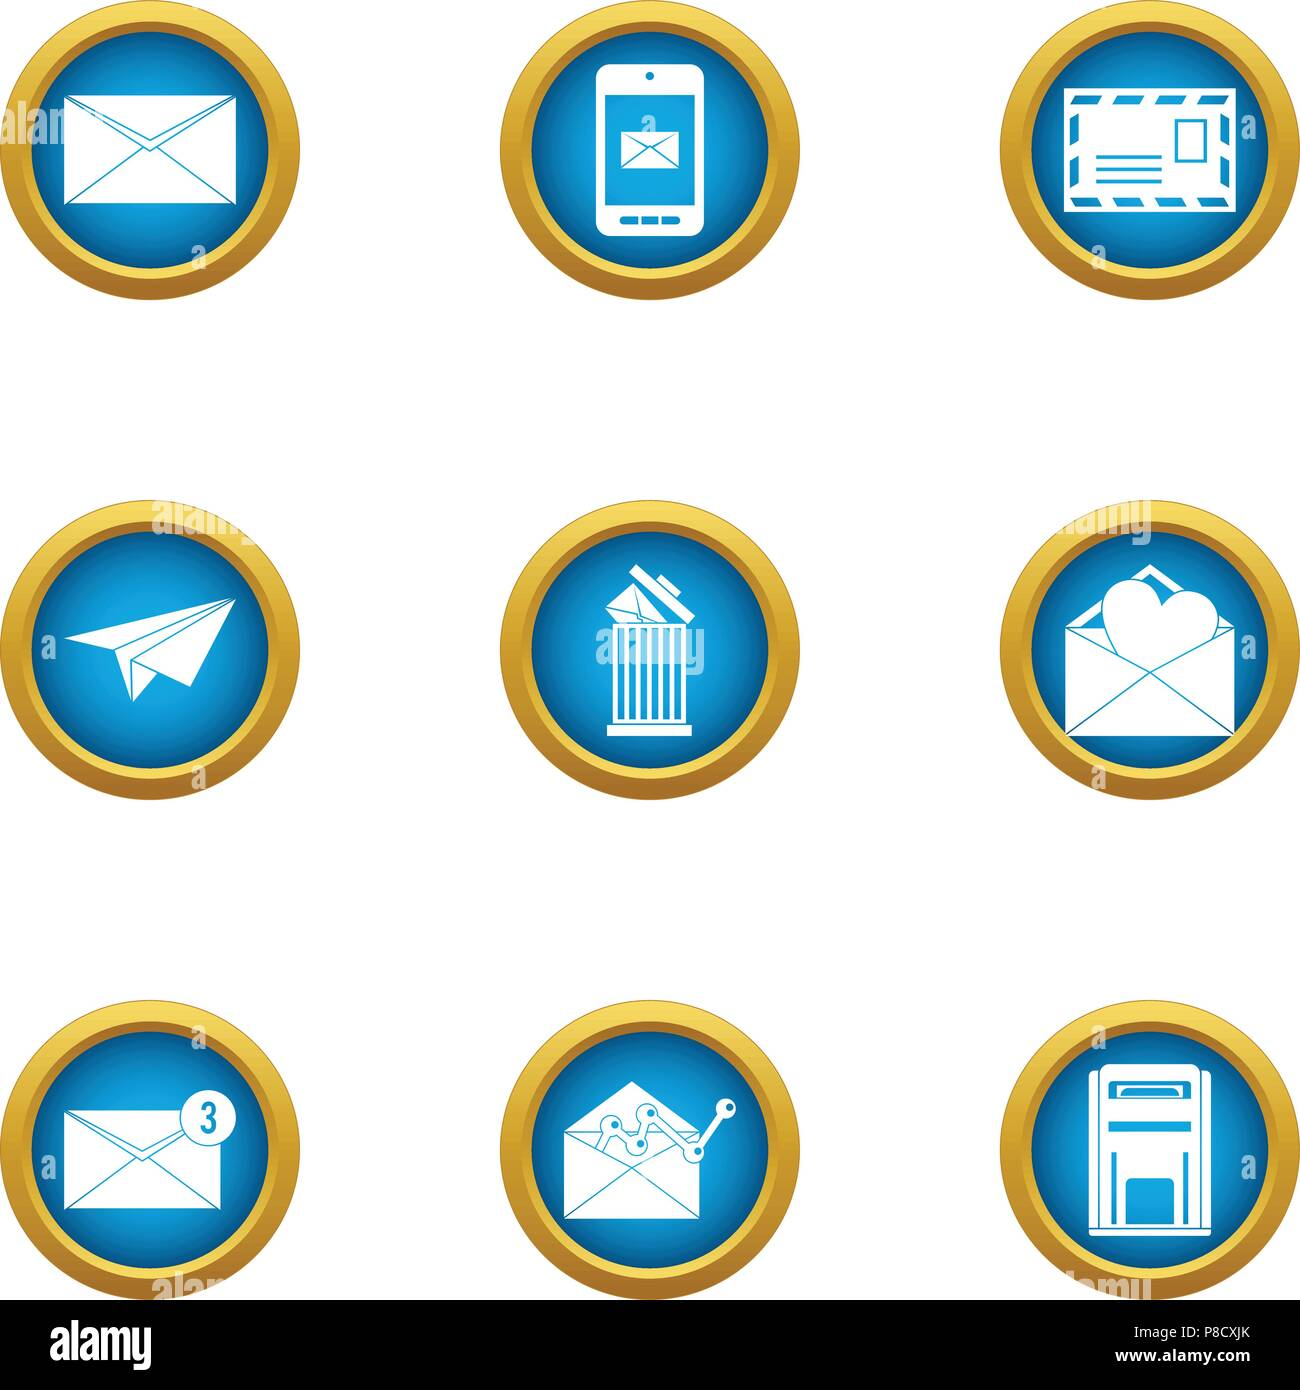 Submit icons set, flat style - Stock Vector